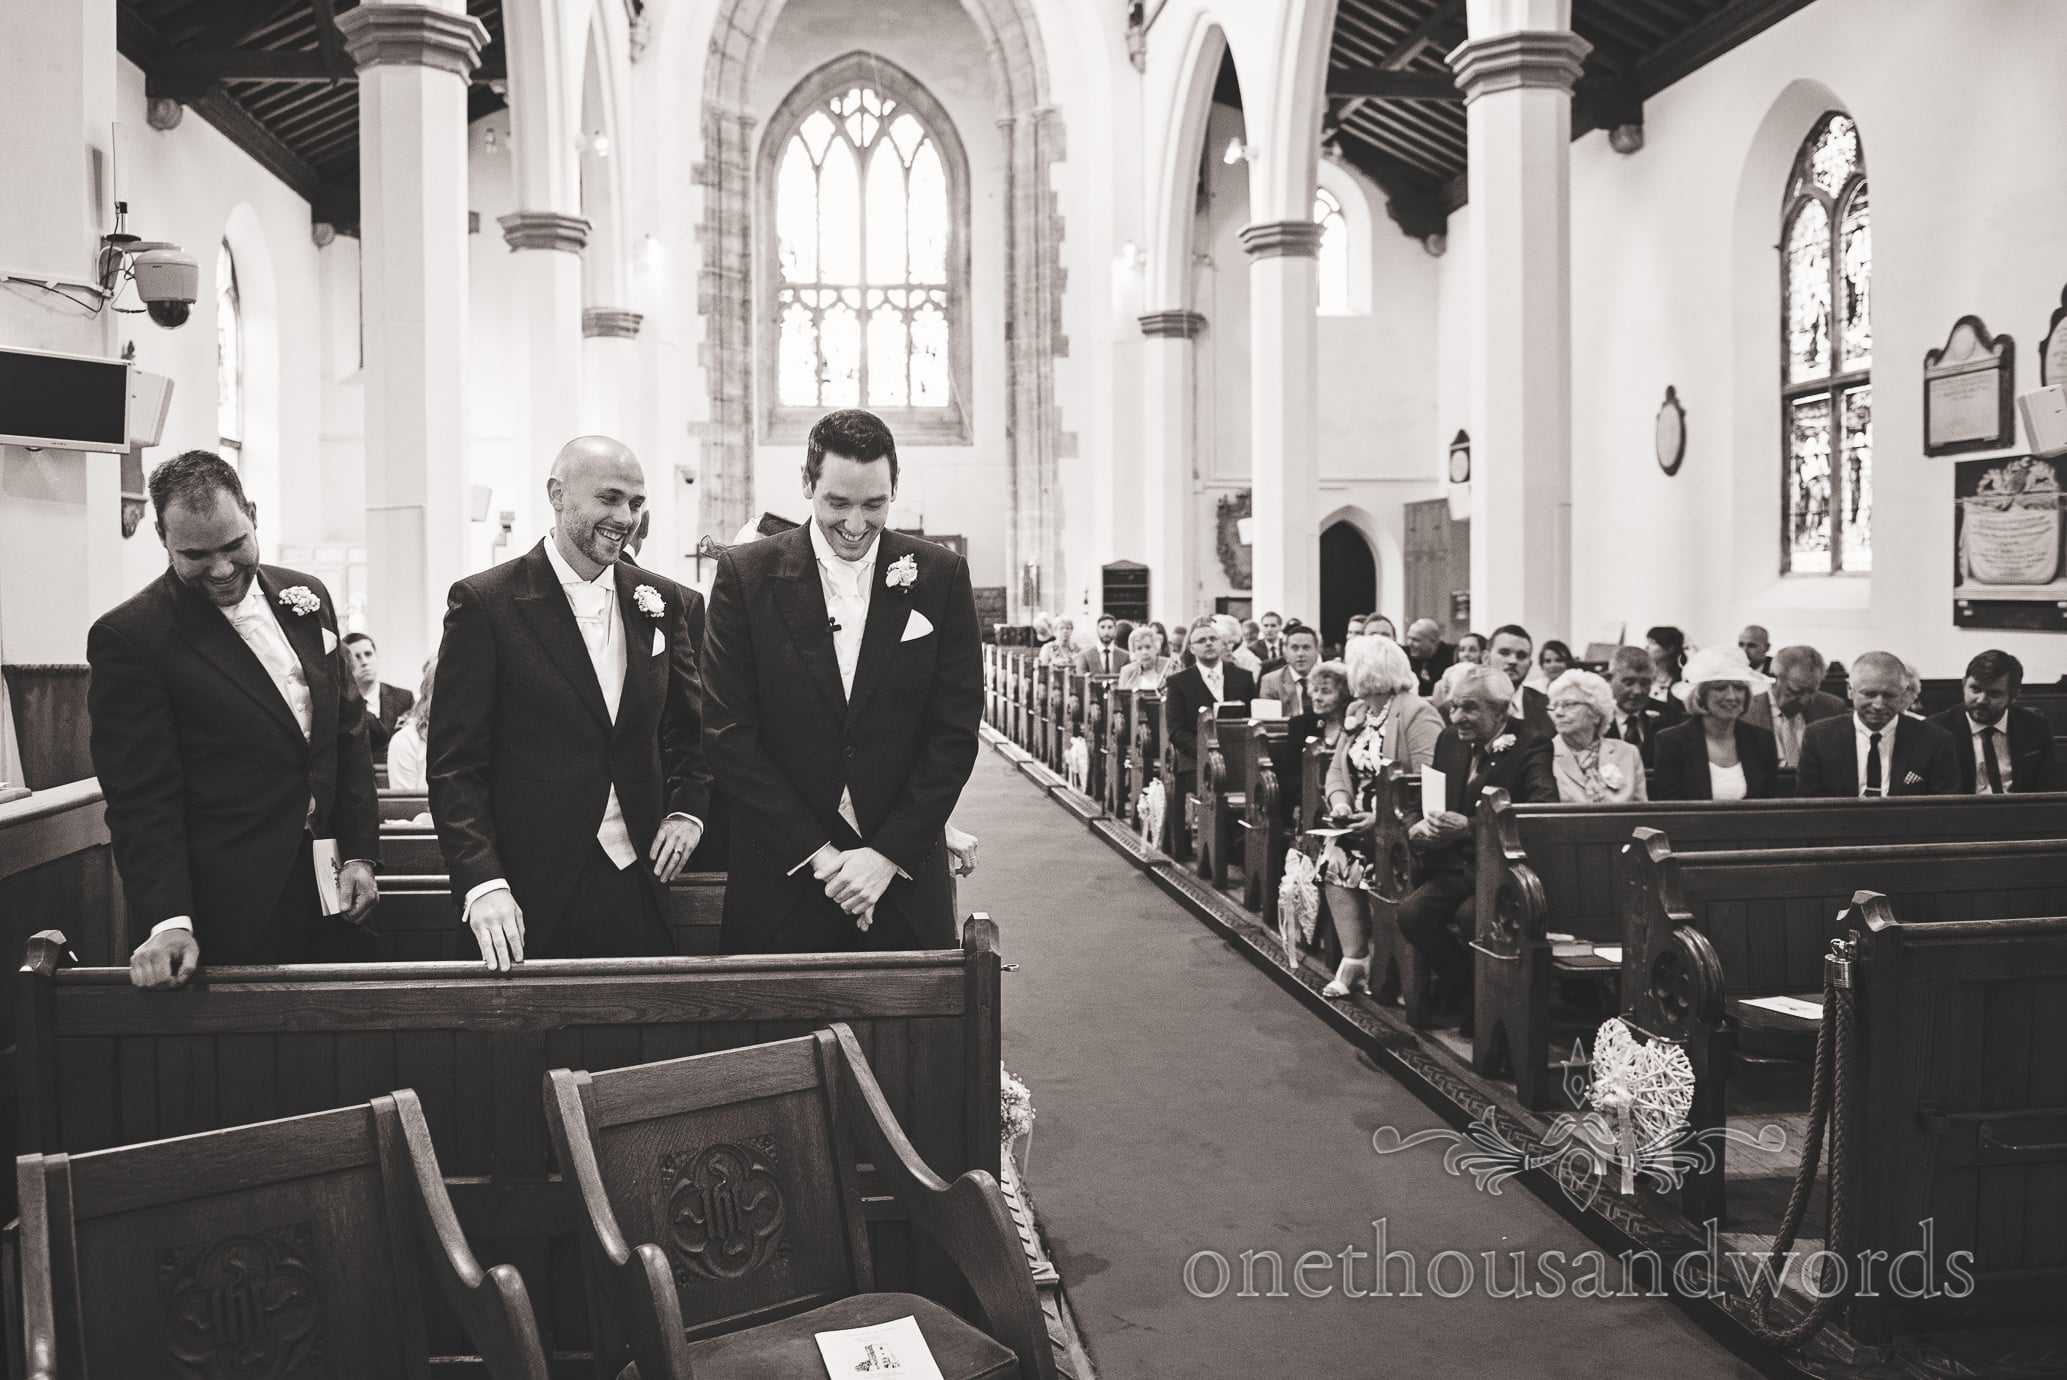 Black and White wedding photograph of groom and best men waiting in Church